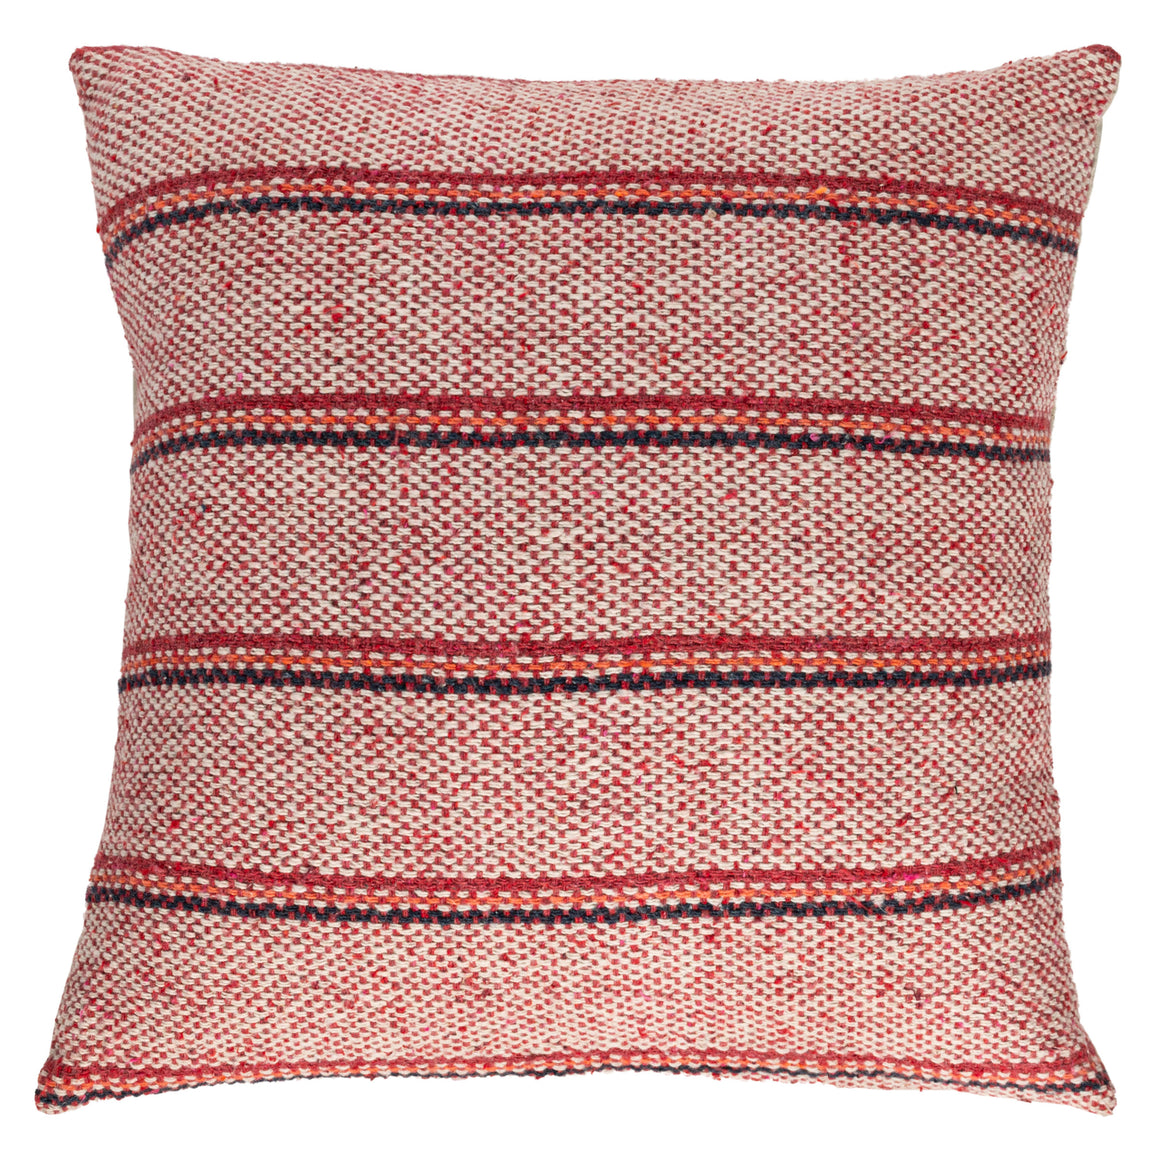 Puebla Pillow - Red